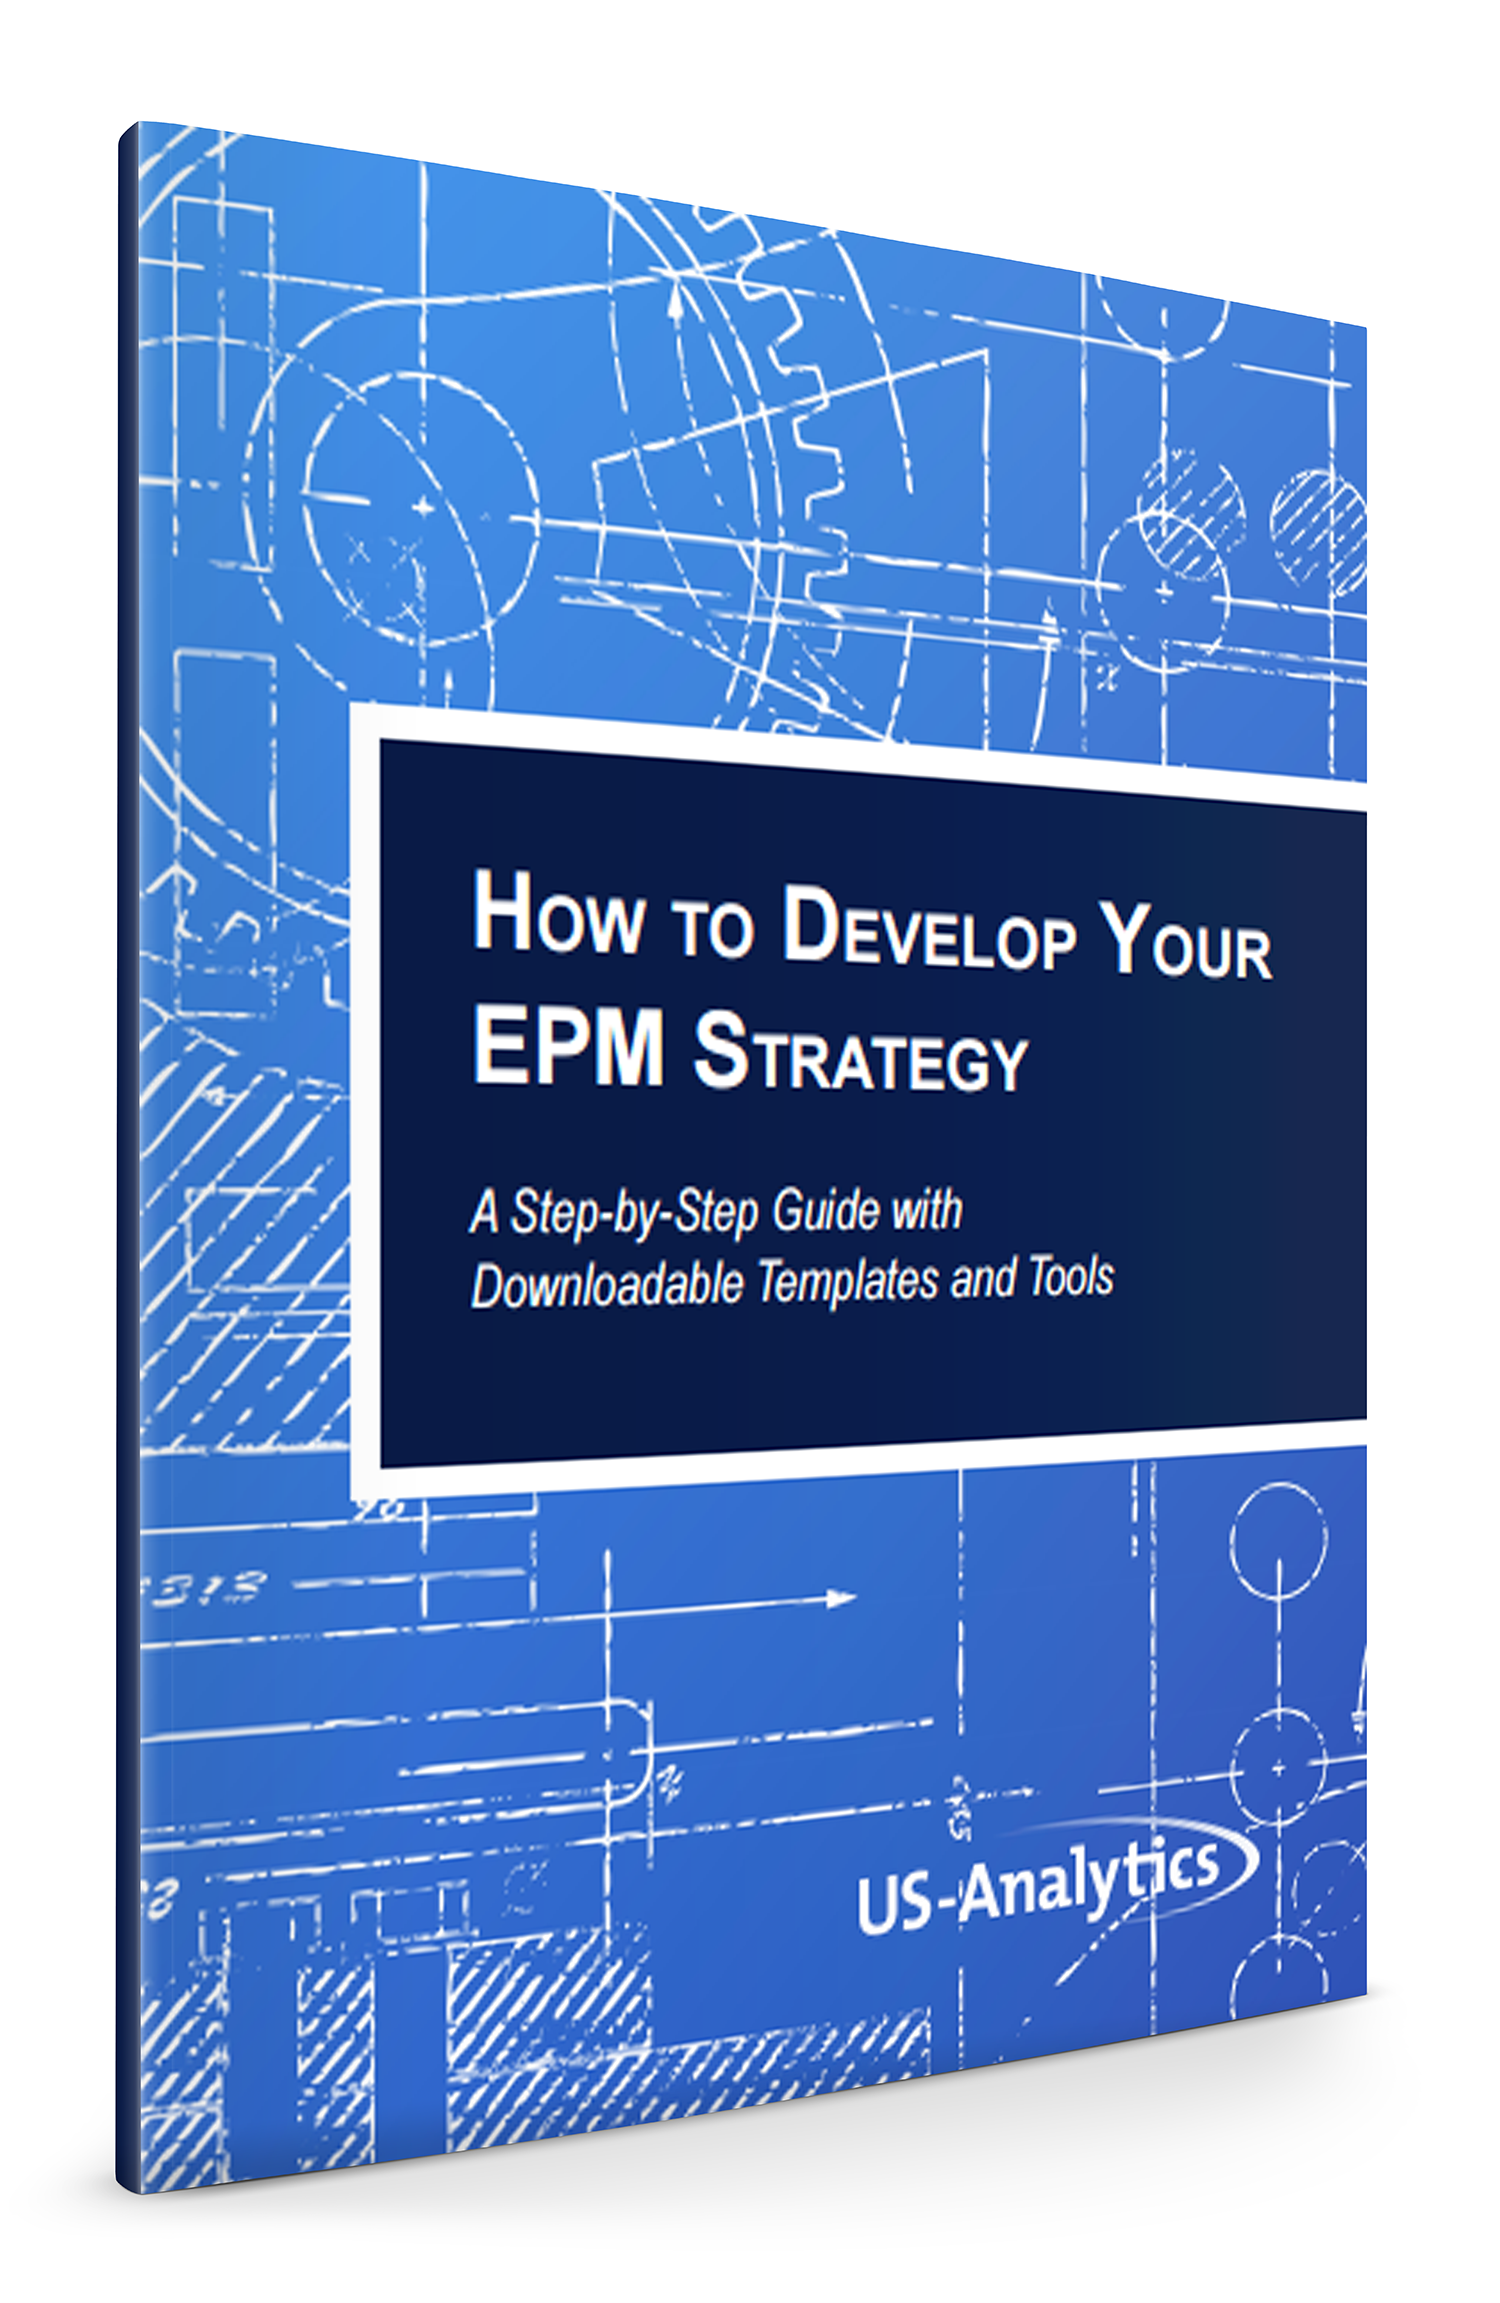 How to Develop Your EPM Strategy.png